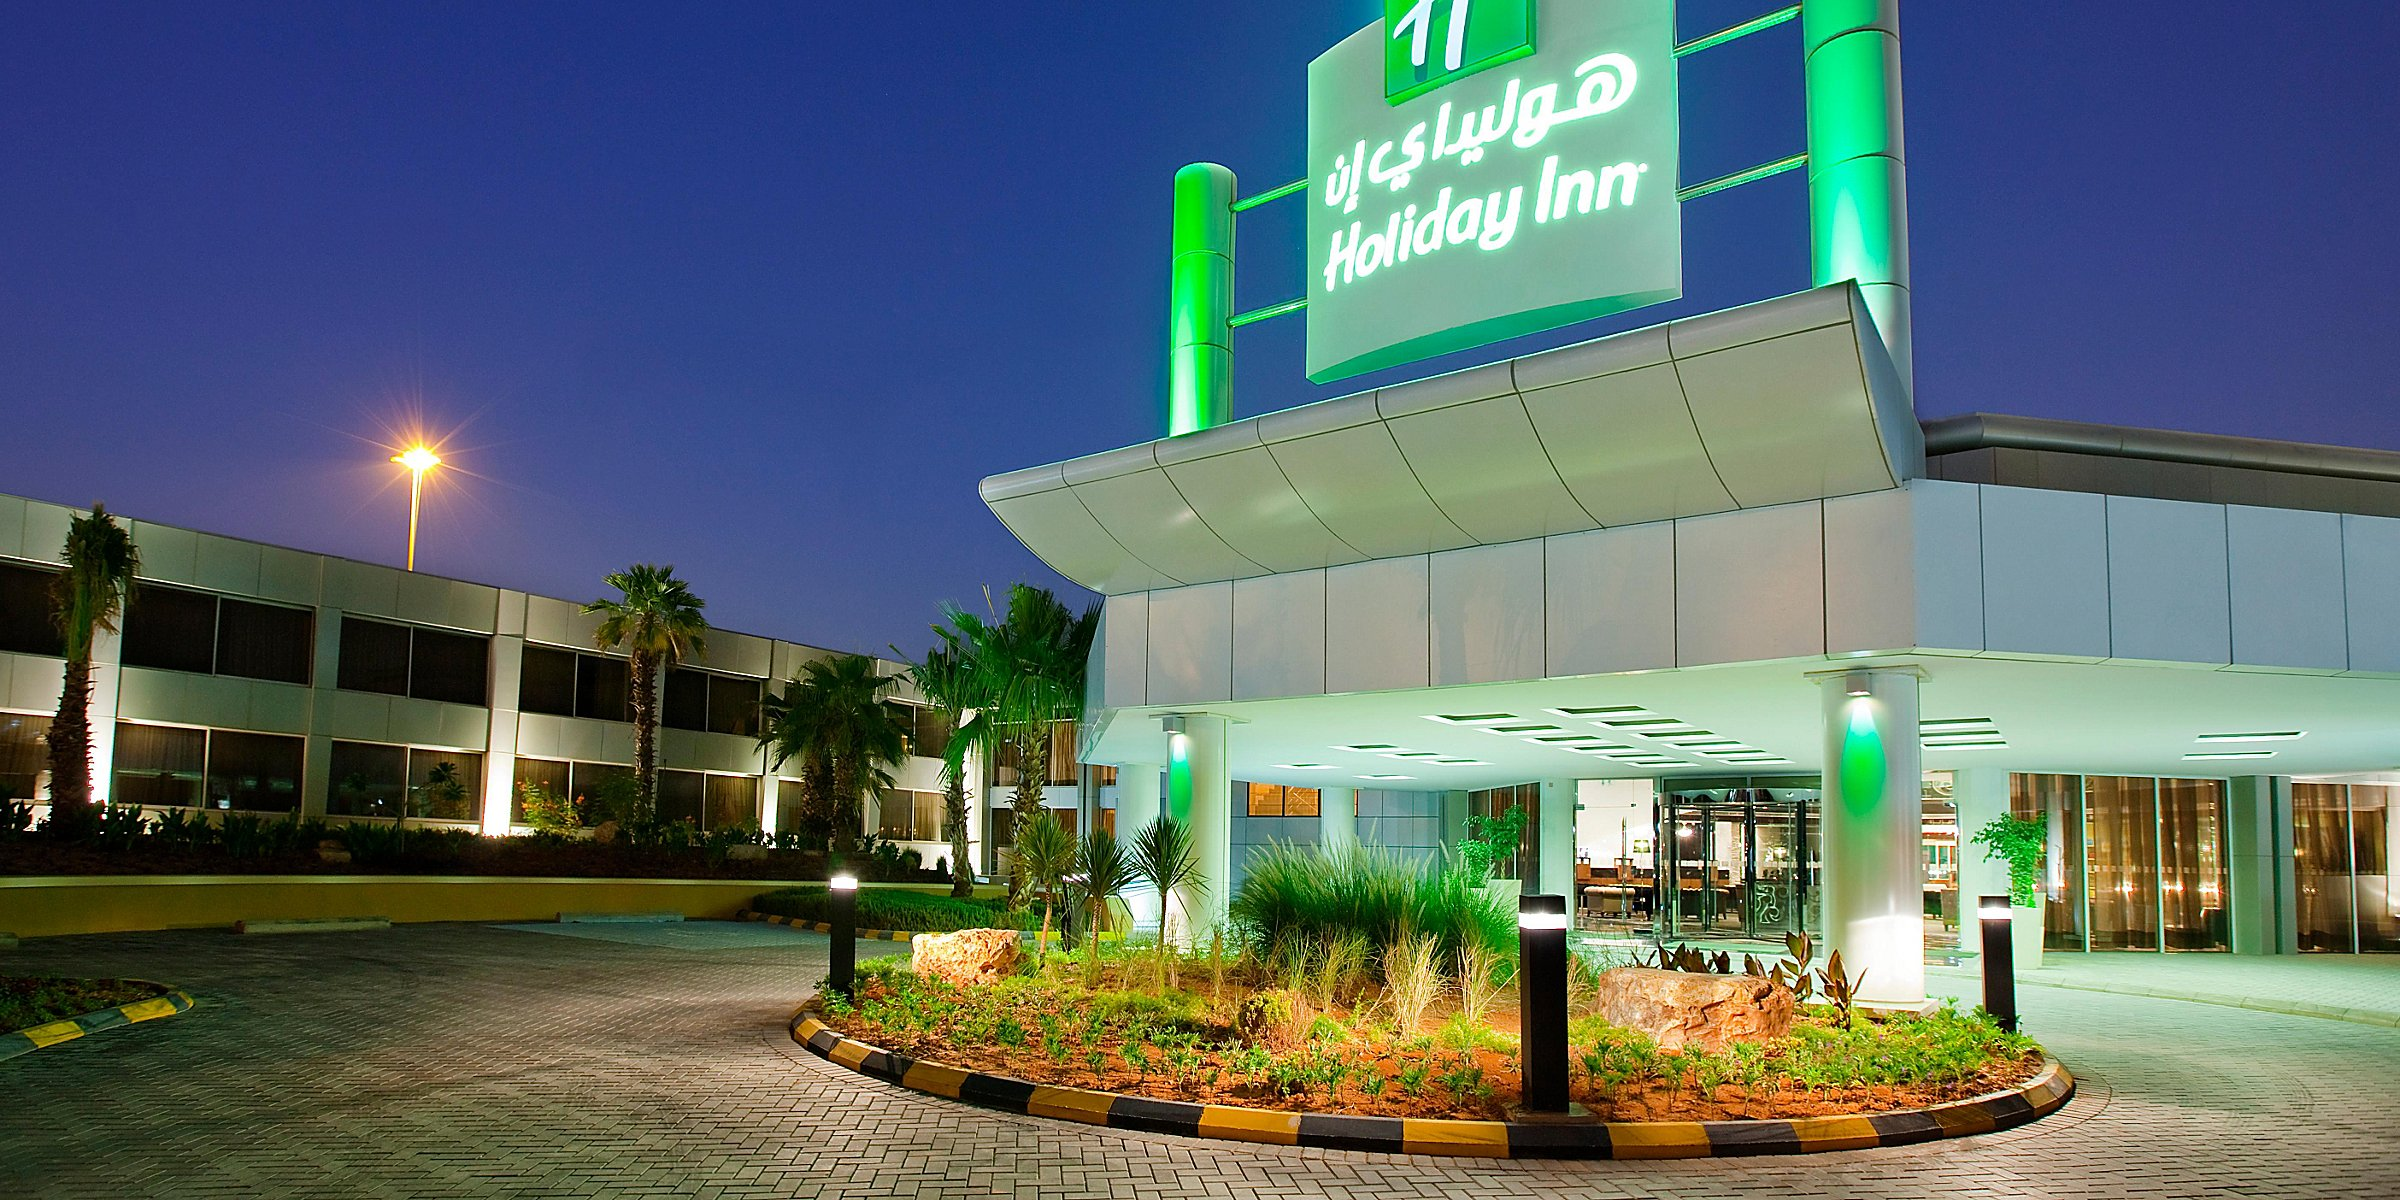 Holiday Inn Riyadh - Izdihar Hotel by IHG